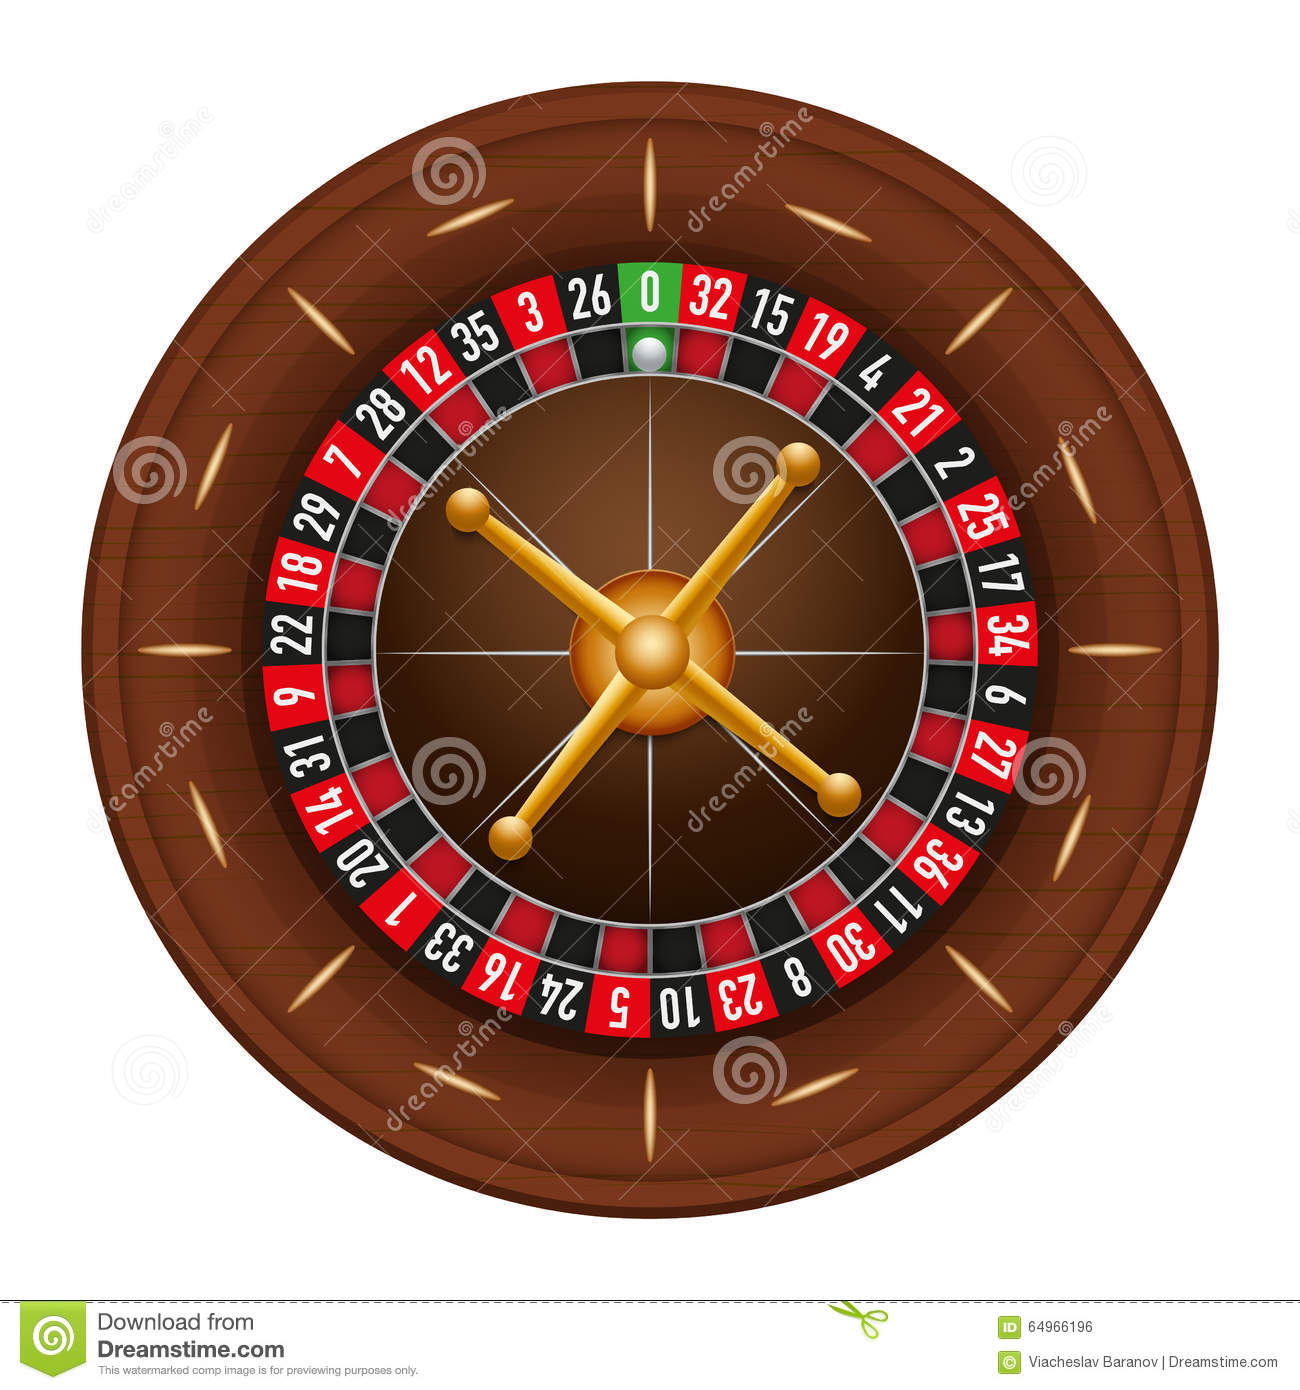 Roulette sector betting